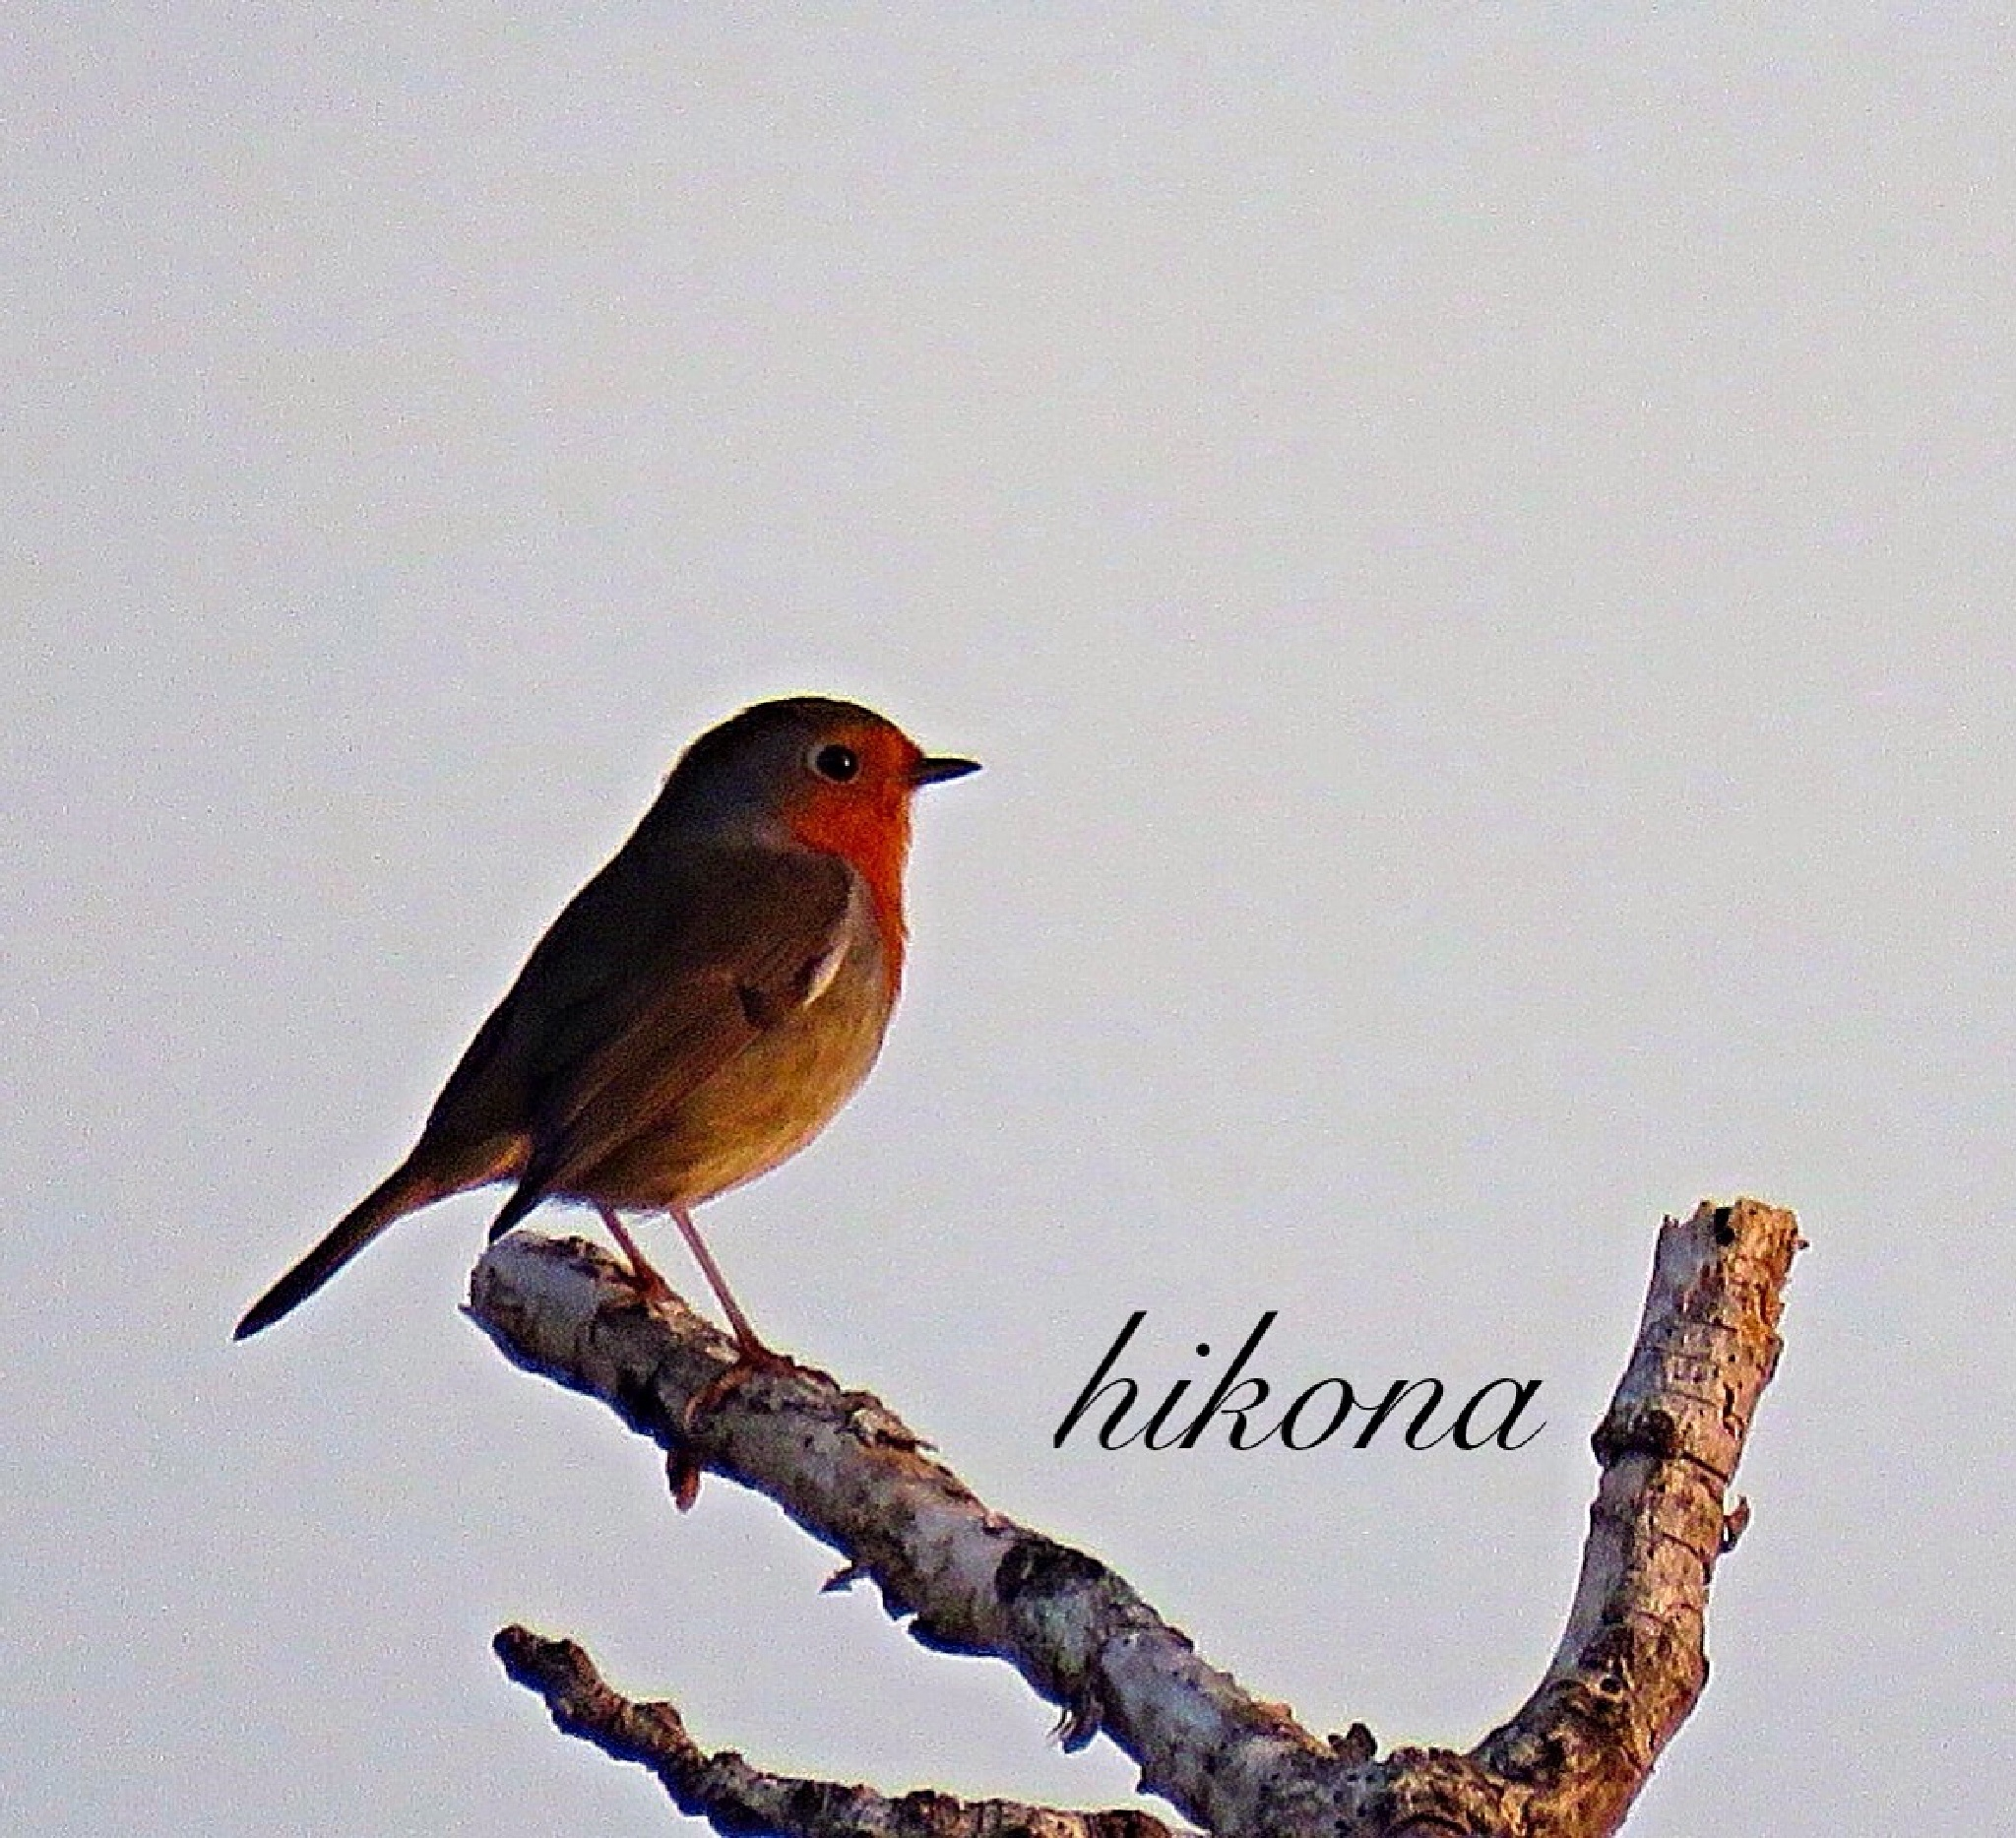 Beautiful bird  by Hikona